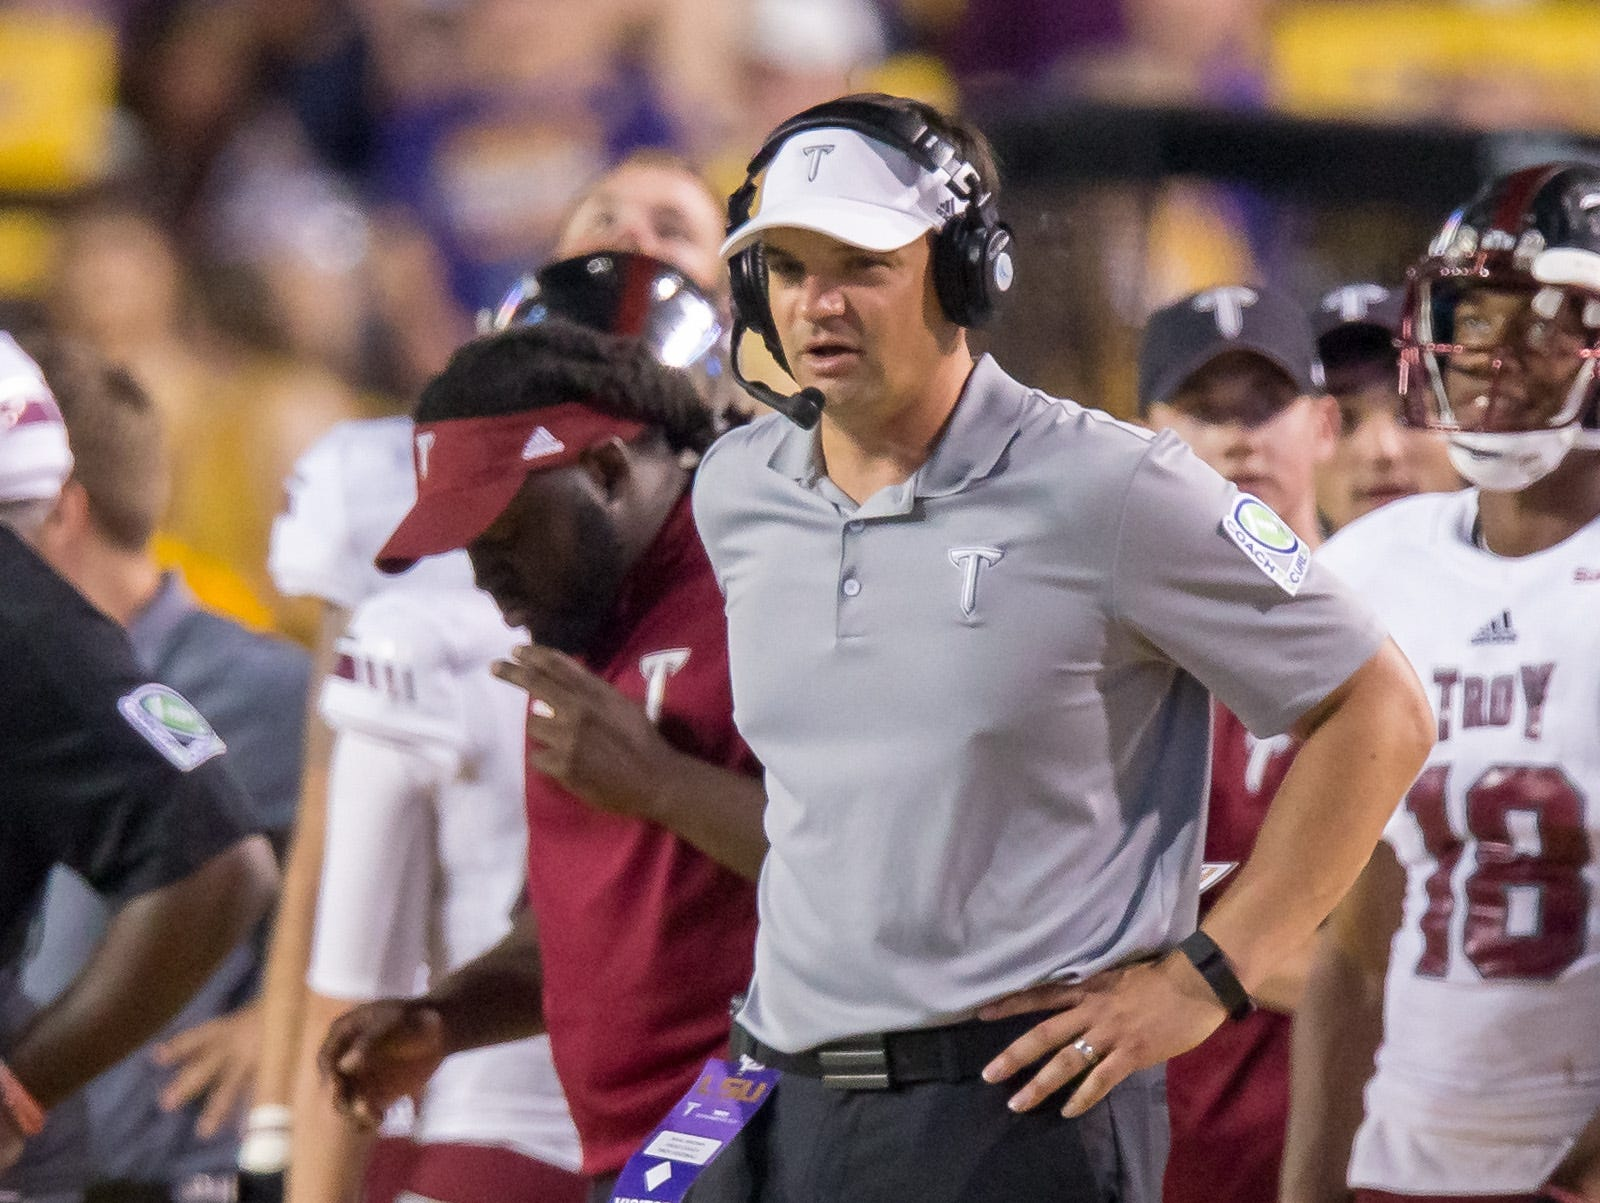 Sep 30, 2017; Baton Rouge, LA, USA; Troy Trojans head coach Neal Brown looks on during the game between the LSU Tigers and the Troy Trojans at Tiger Stadium. Troy Trojans won 24-21.